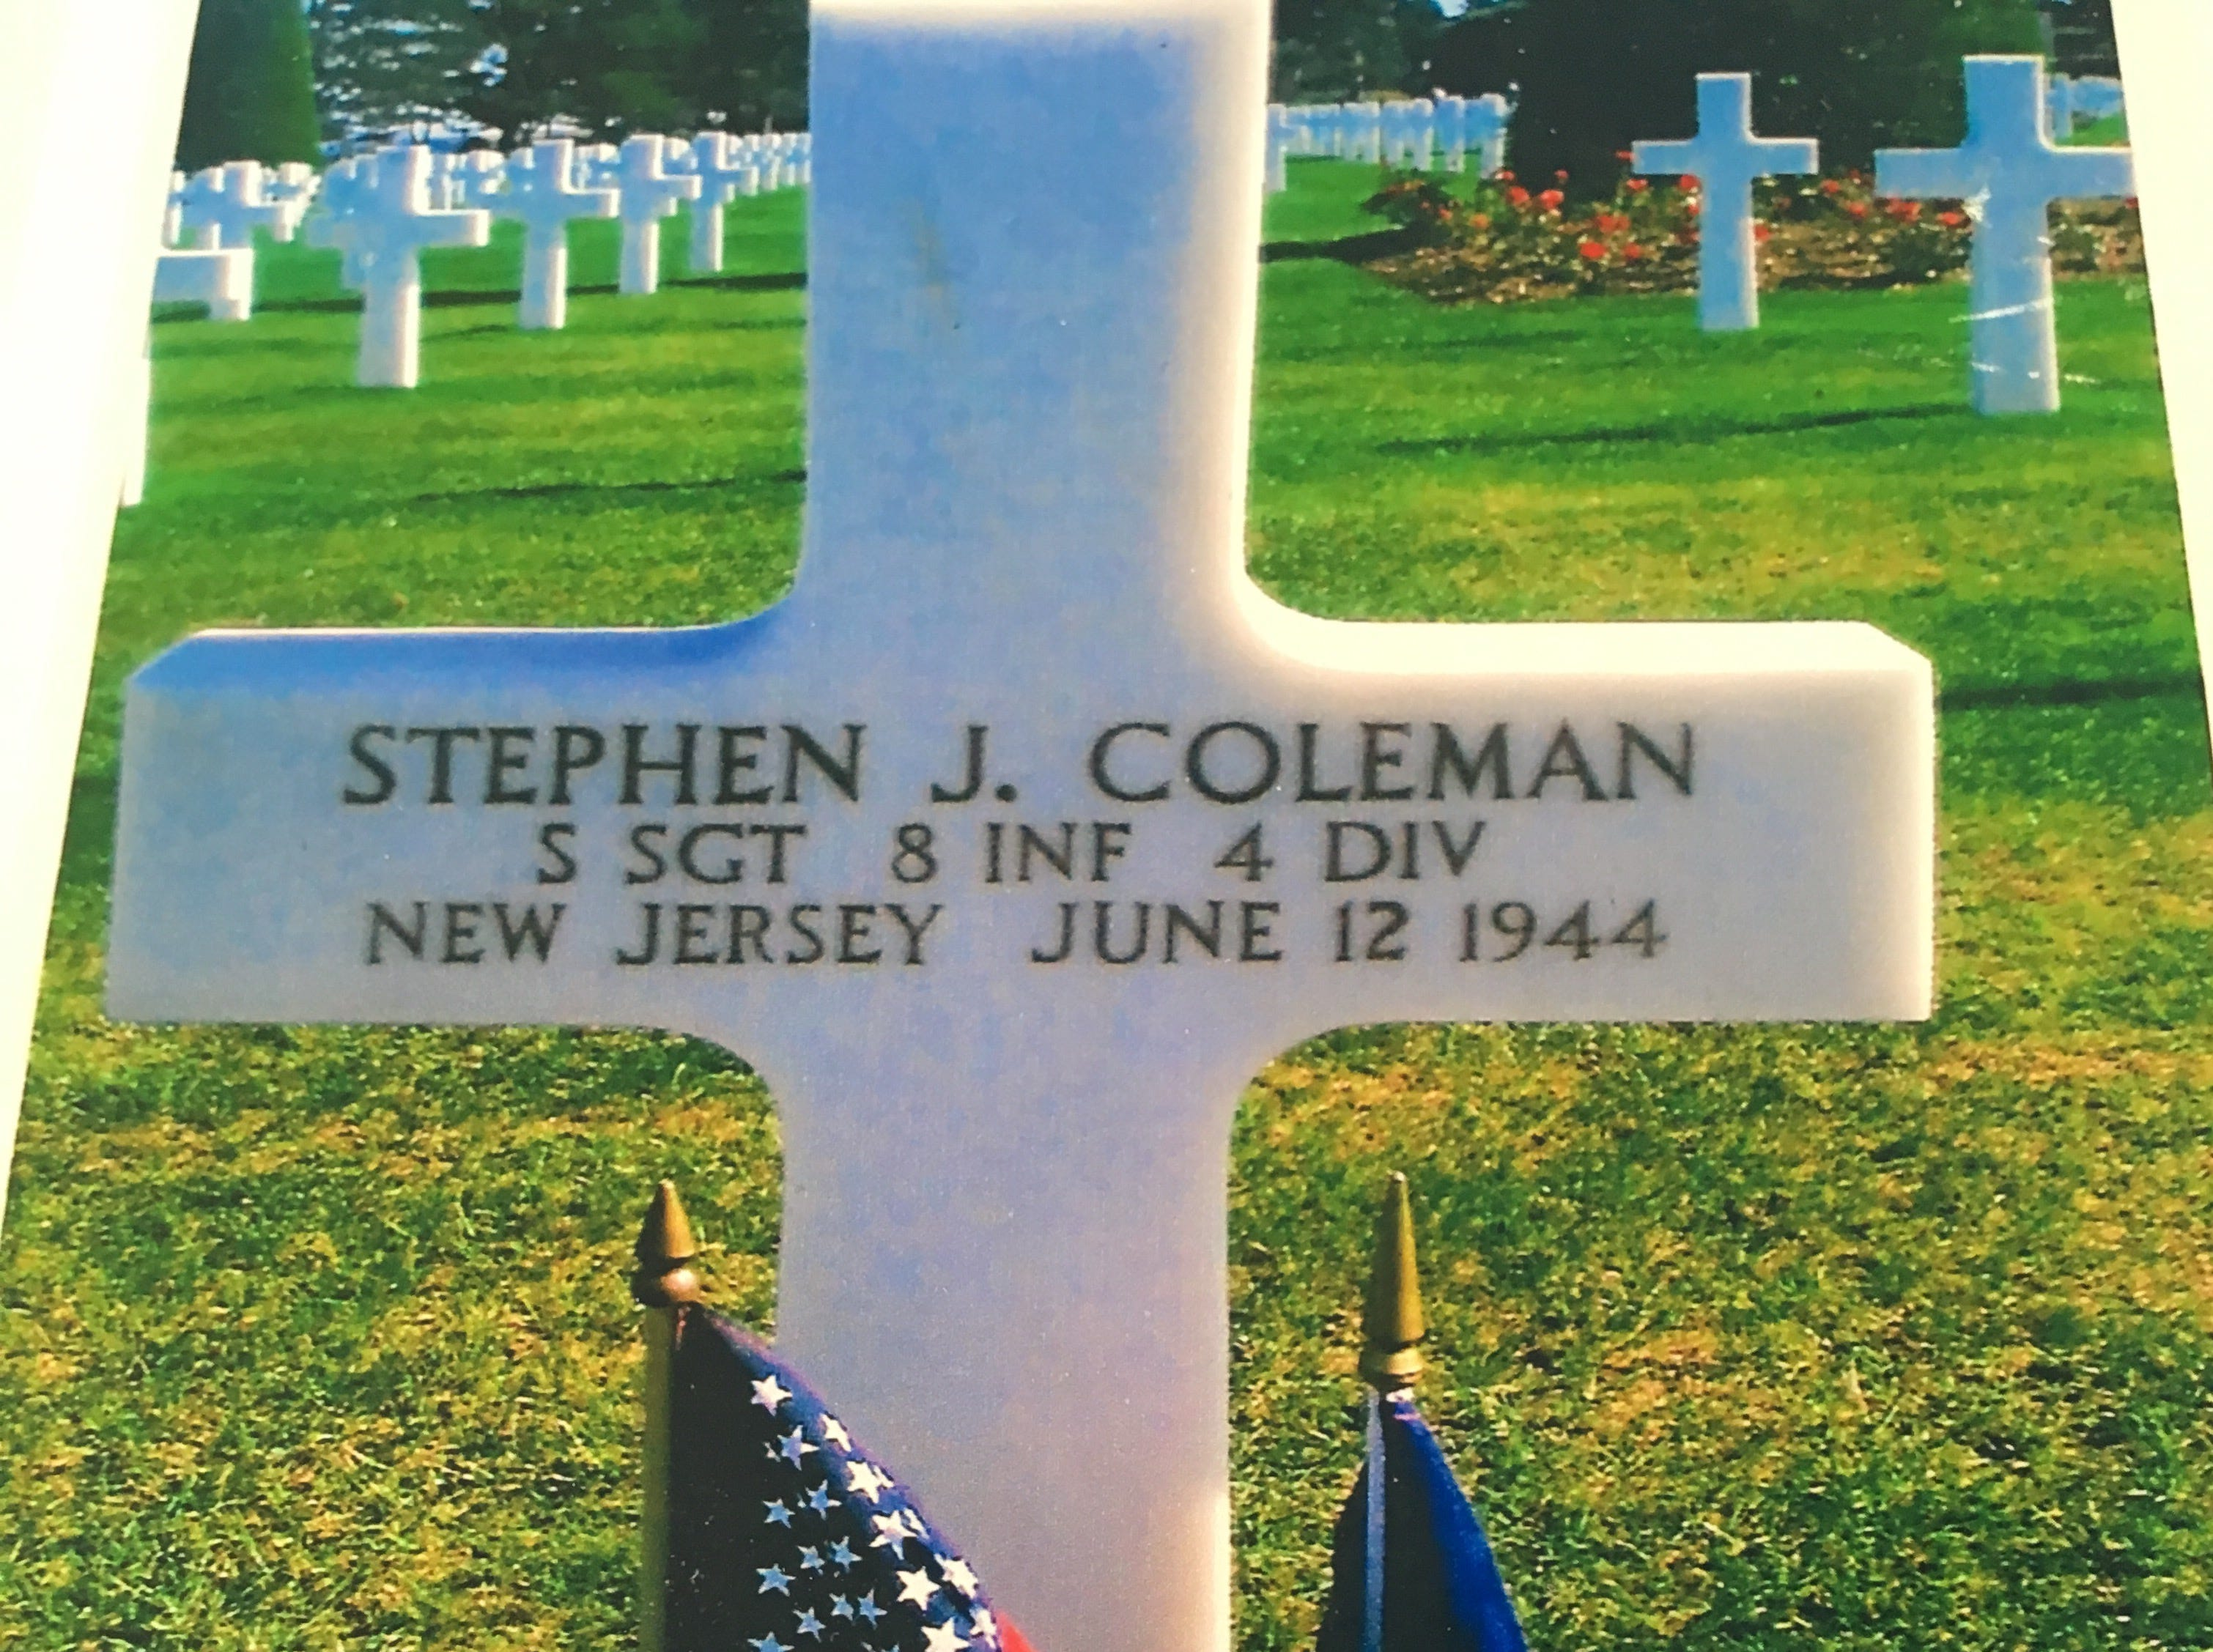 Sgt. Stephen Coleman's grave in Normandy, France.